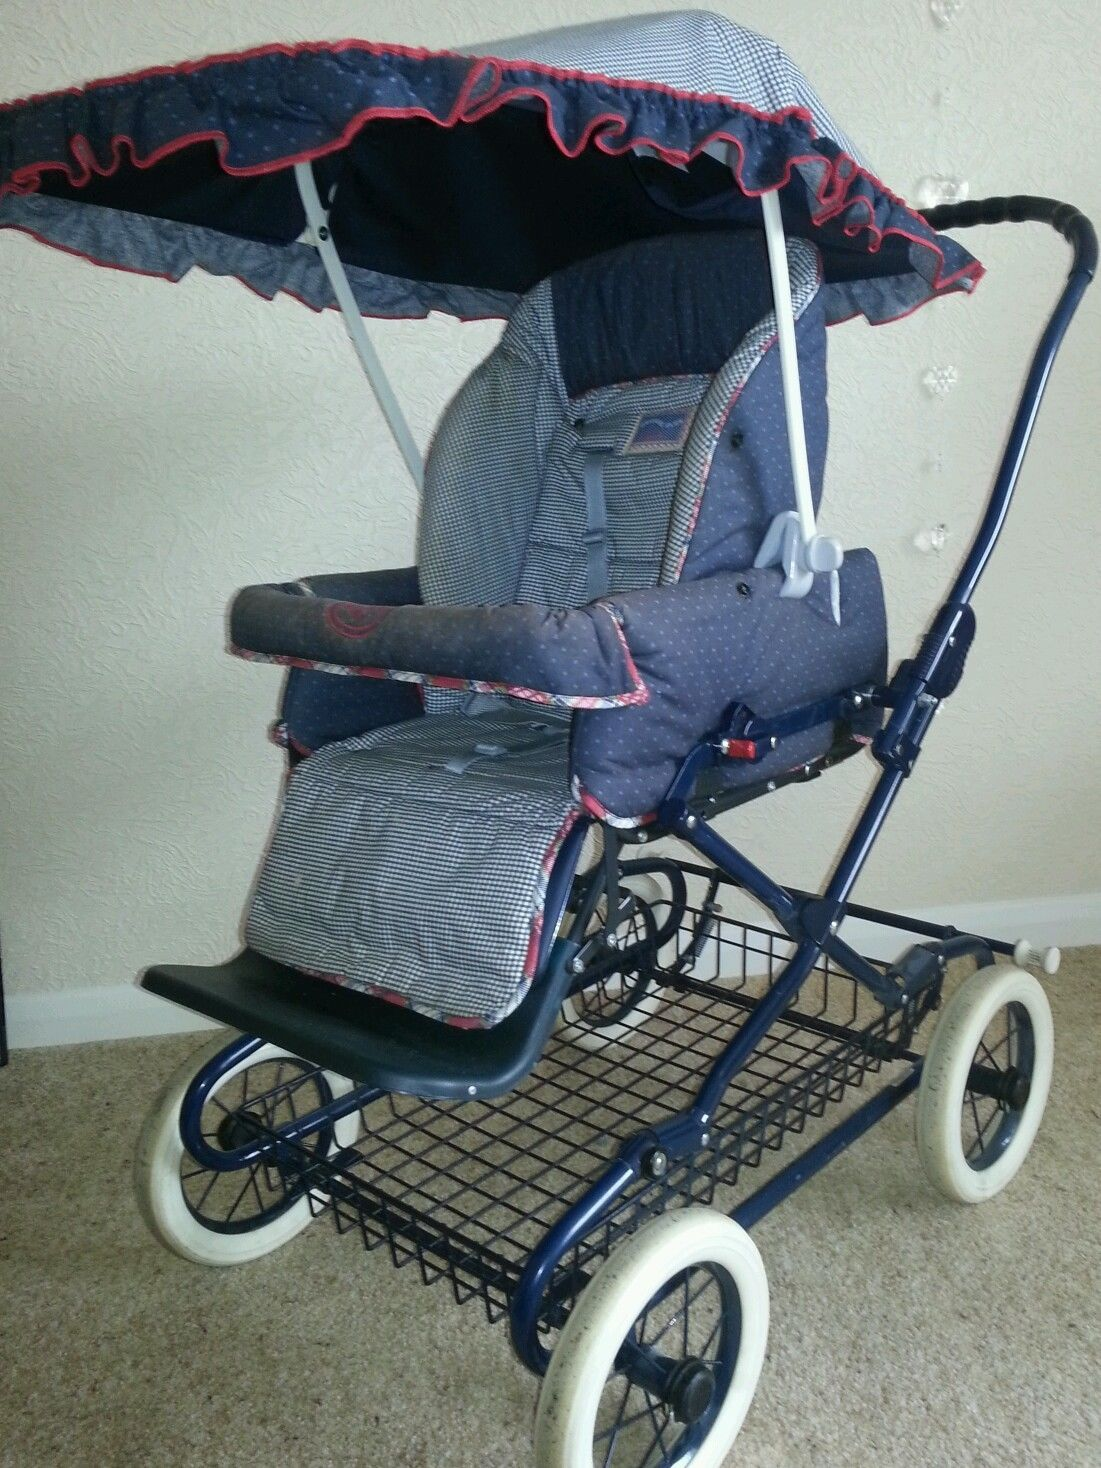 Silver Cross Pushchairs On Ebay Silver Cross Combi Pram Ebay Prams Prams Silver Cross